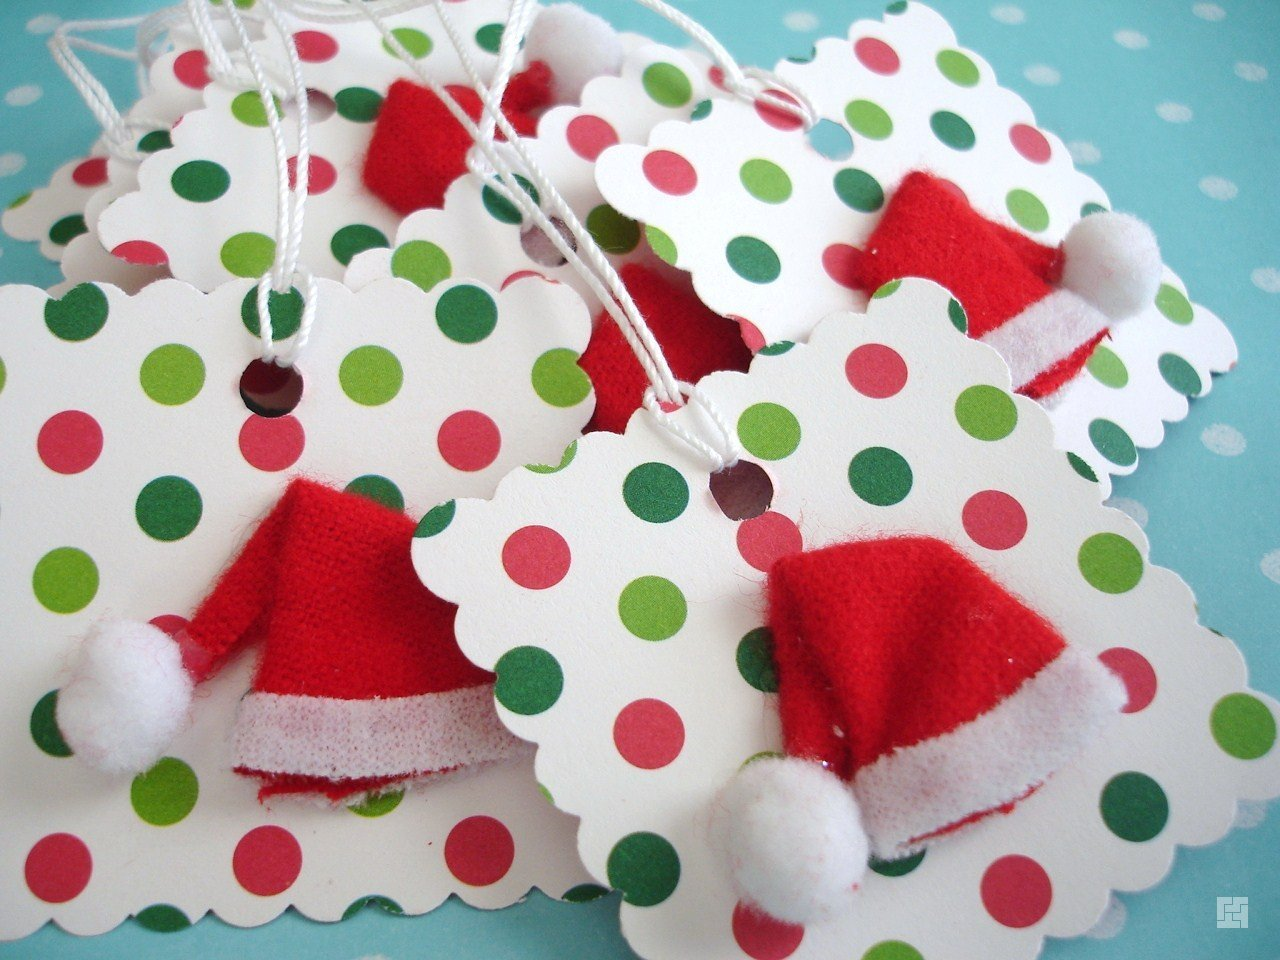 1418655730_creative-homemade-christmas-crafts-ideas